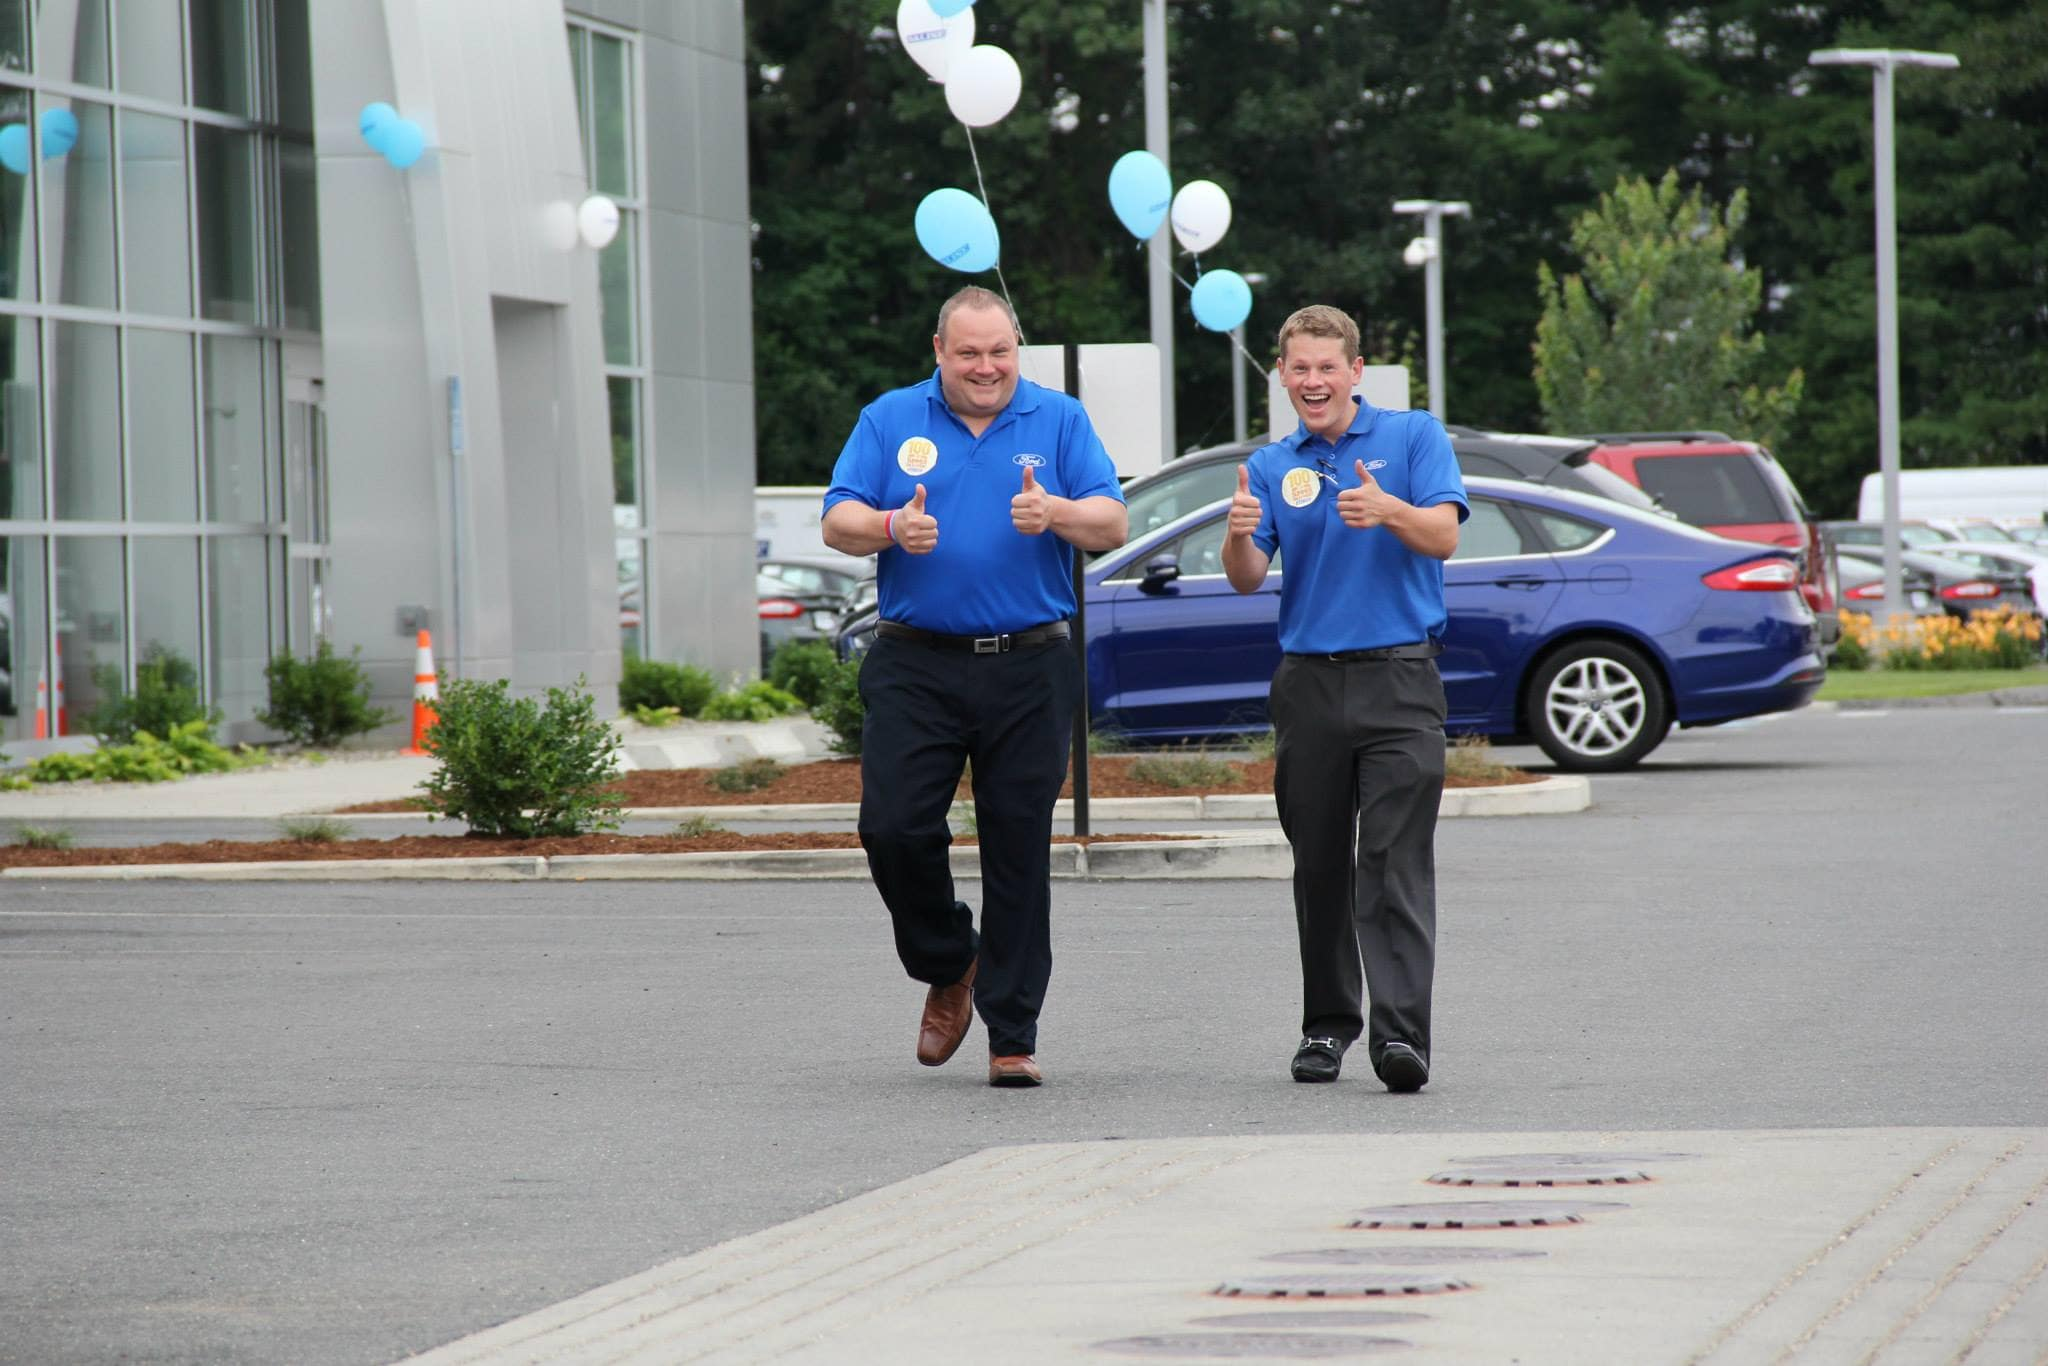 Balise Ford salesmen giving the thumbs up on the dealership lot